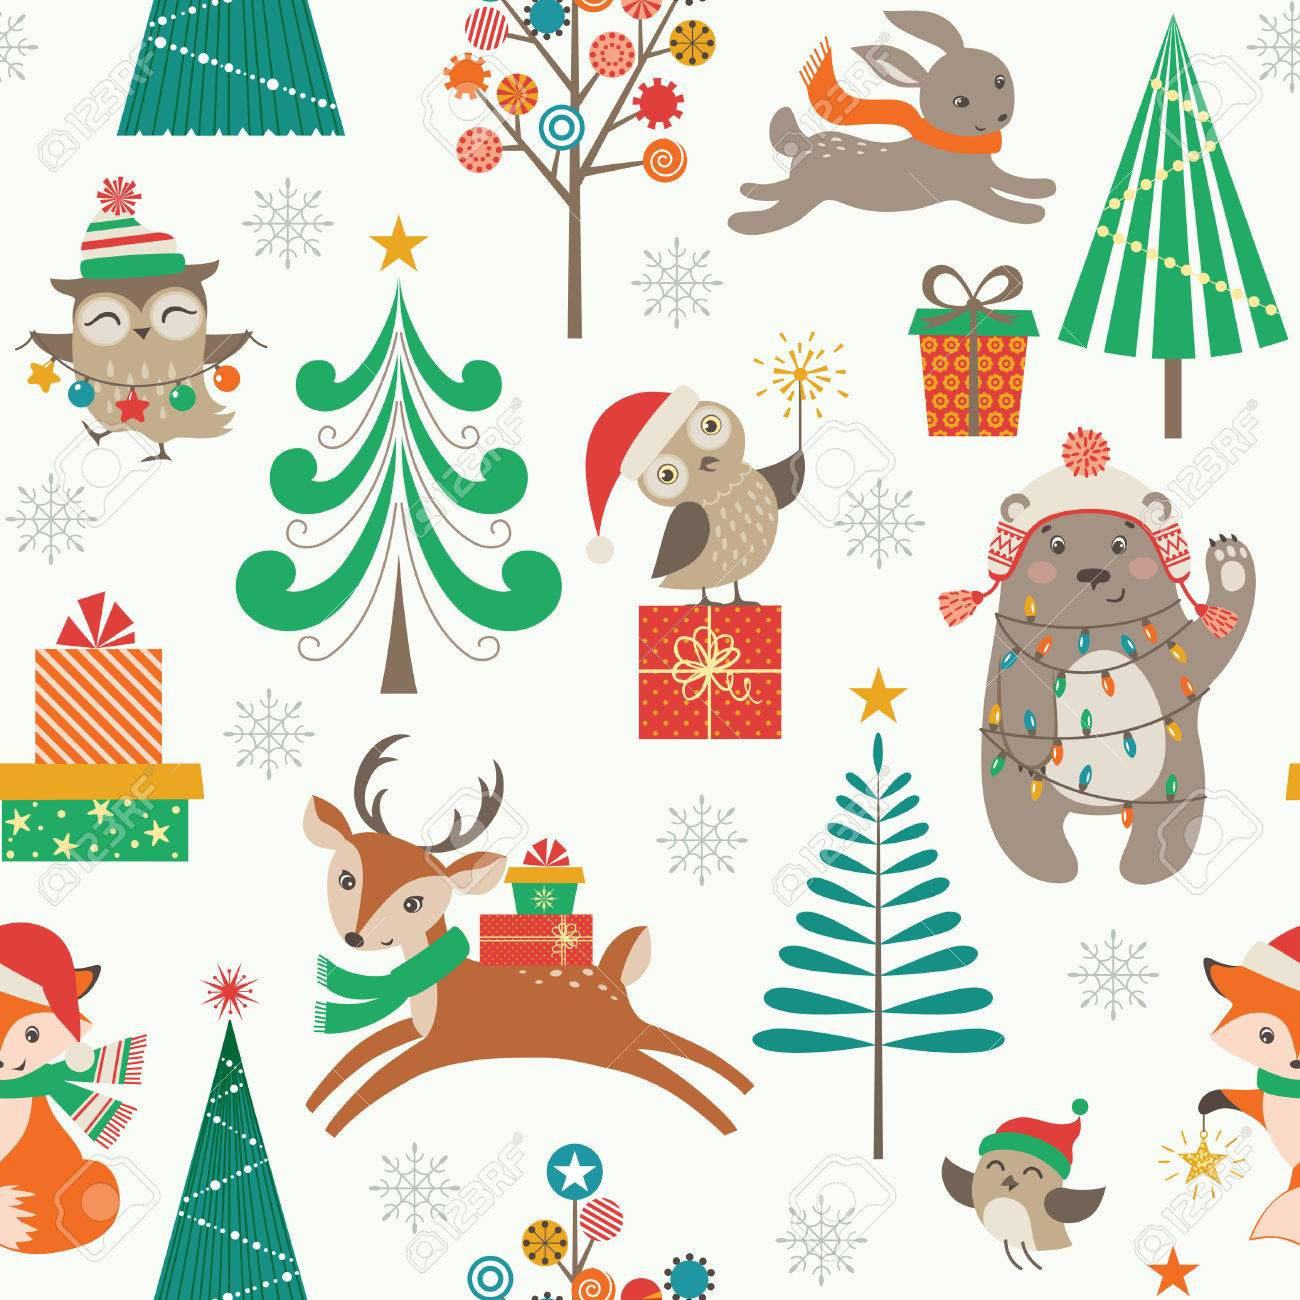 Cute Christmas pattern with woodland animals, Christmas trees and gifts - 47012643